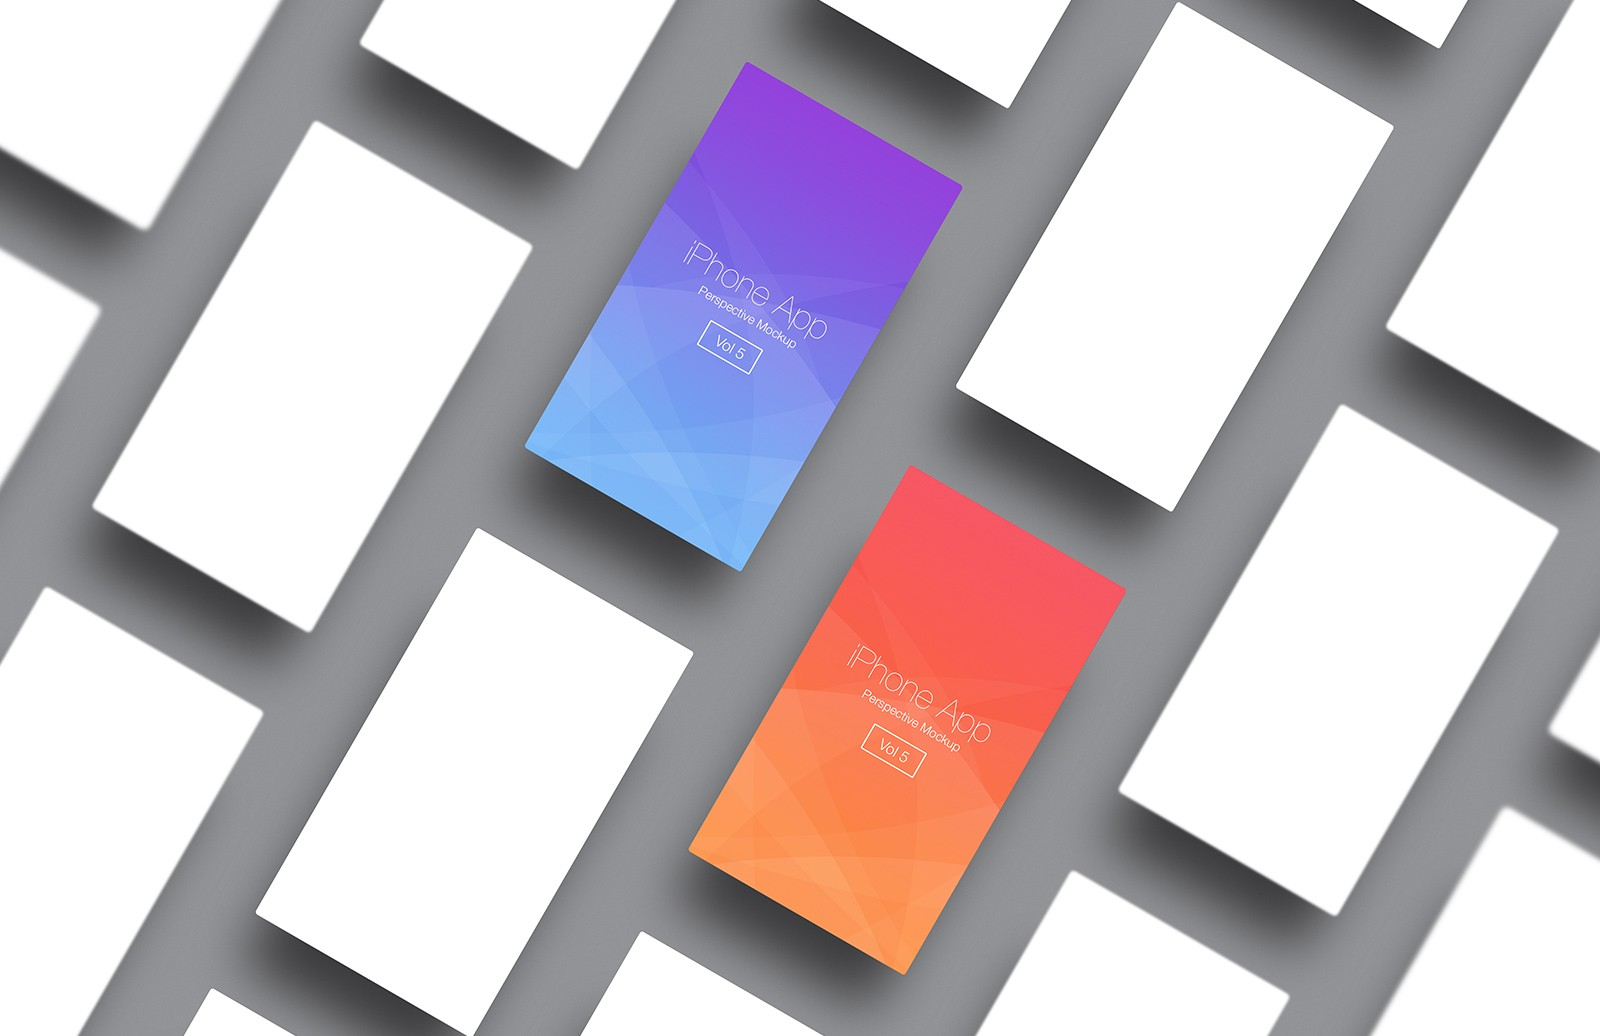 iPhone App Perspective Mockup - Vol 5